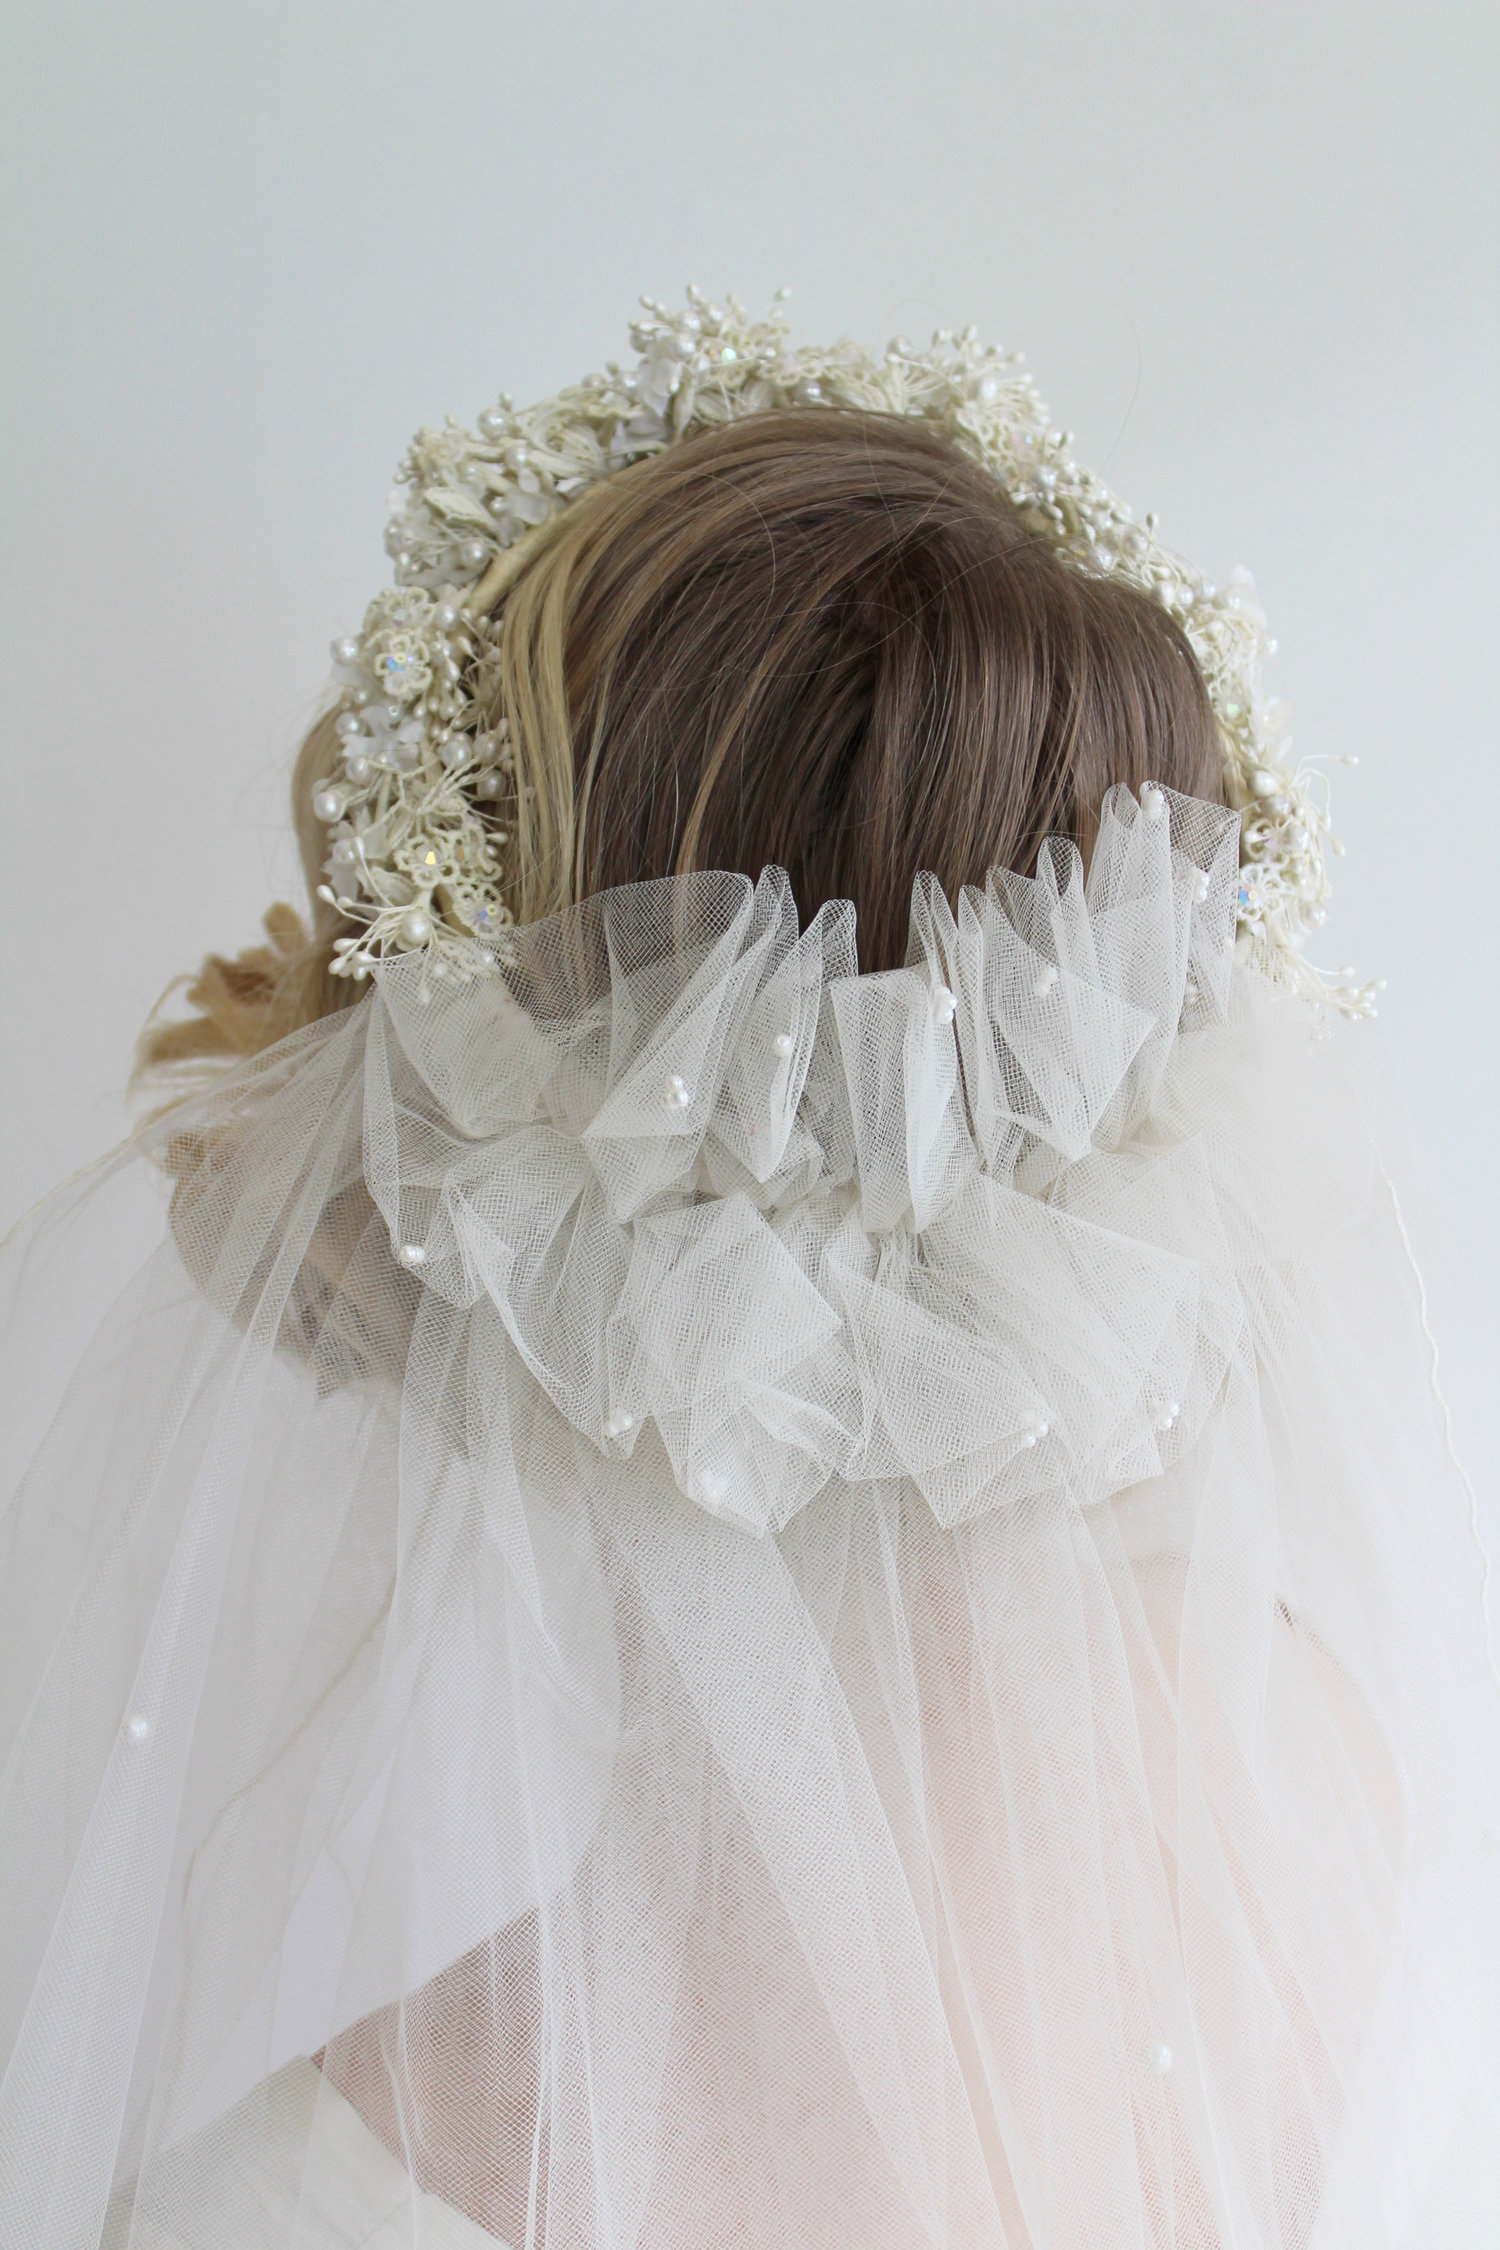 Vintage 1980s flower crown with attached veil with pearl details vintage 1980s flower crown with attached veil with pearl details izmirmasajfo